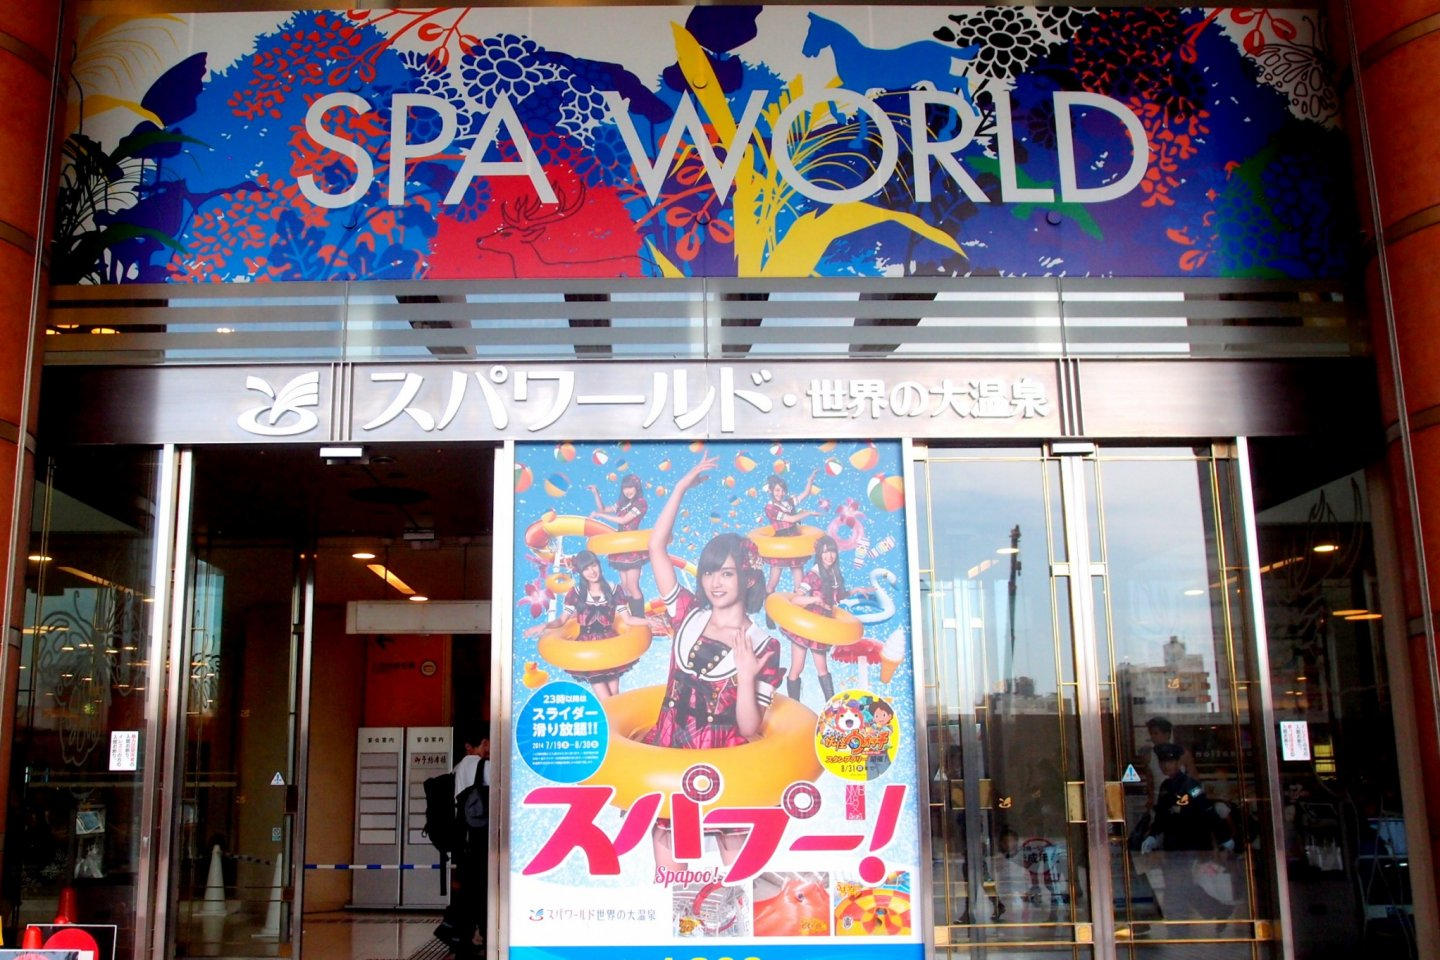 Entrance of Spa World